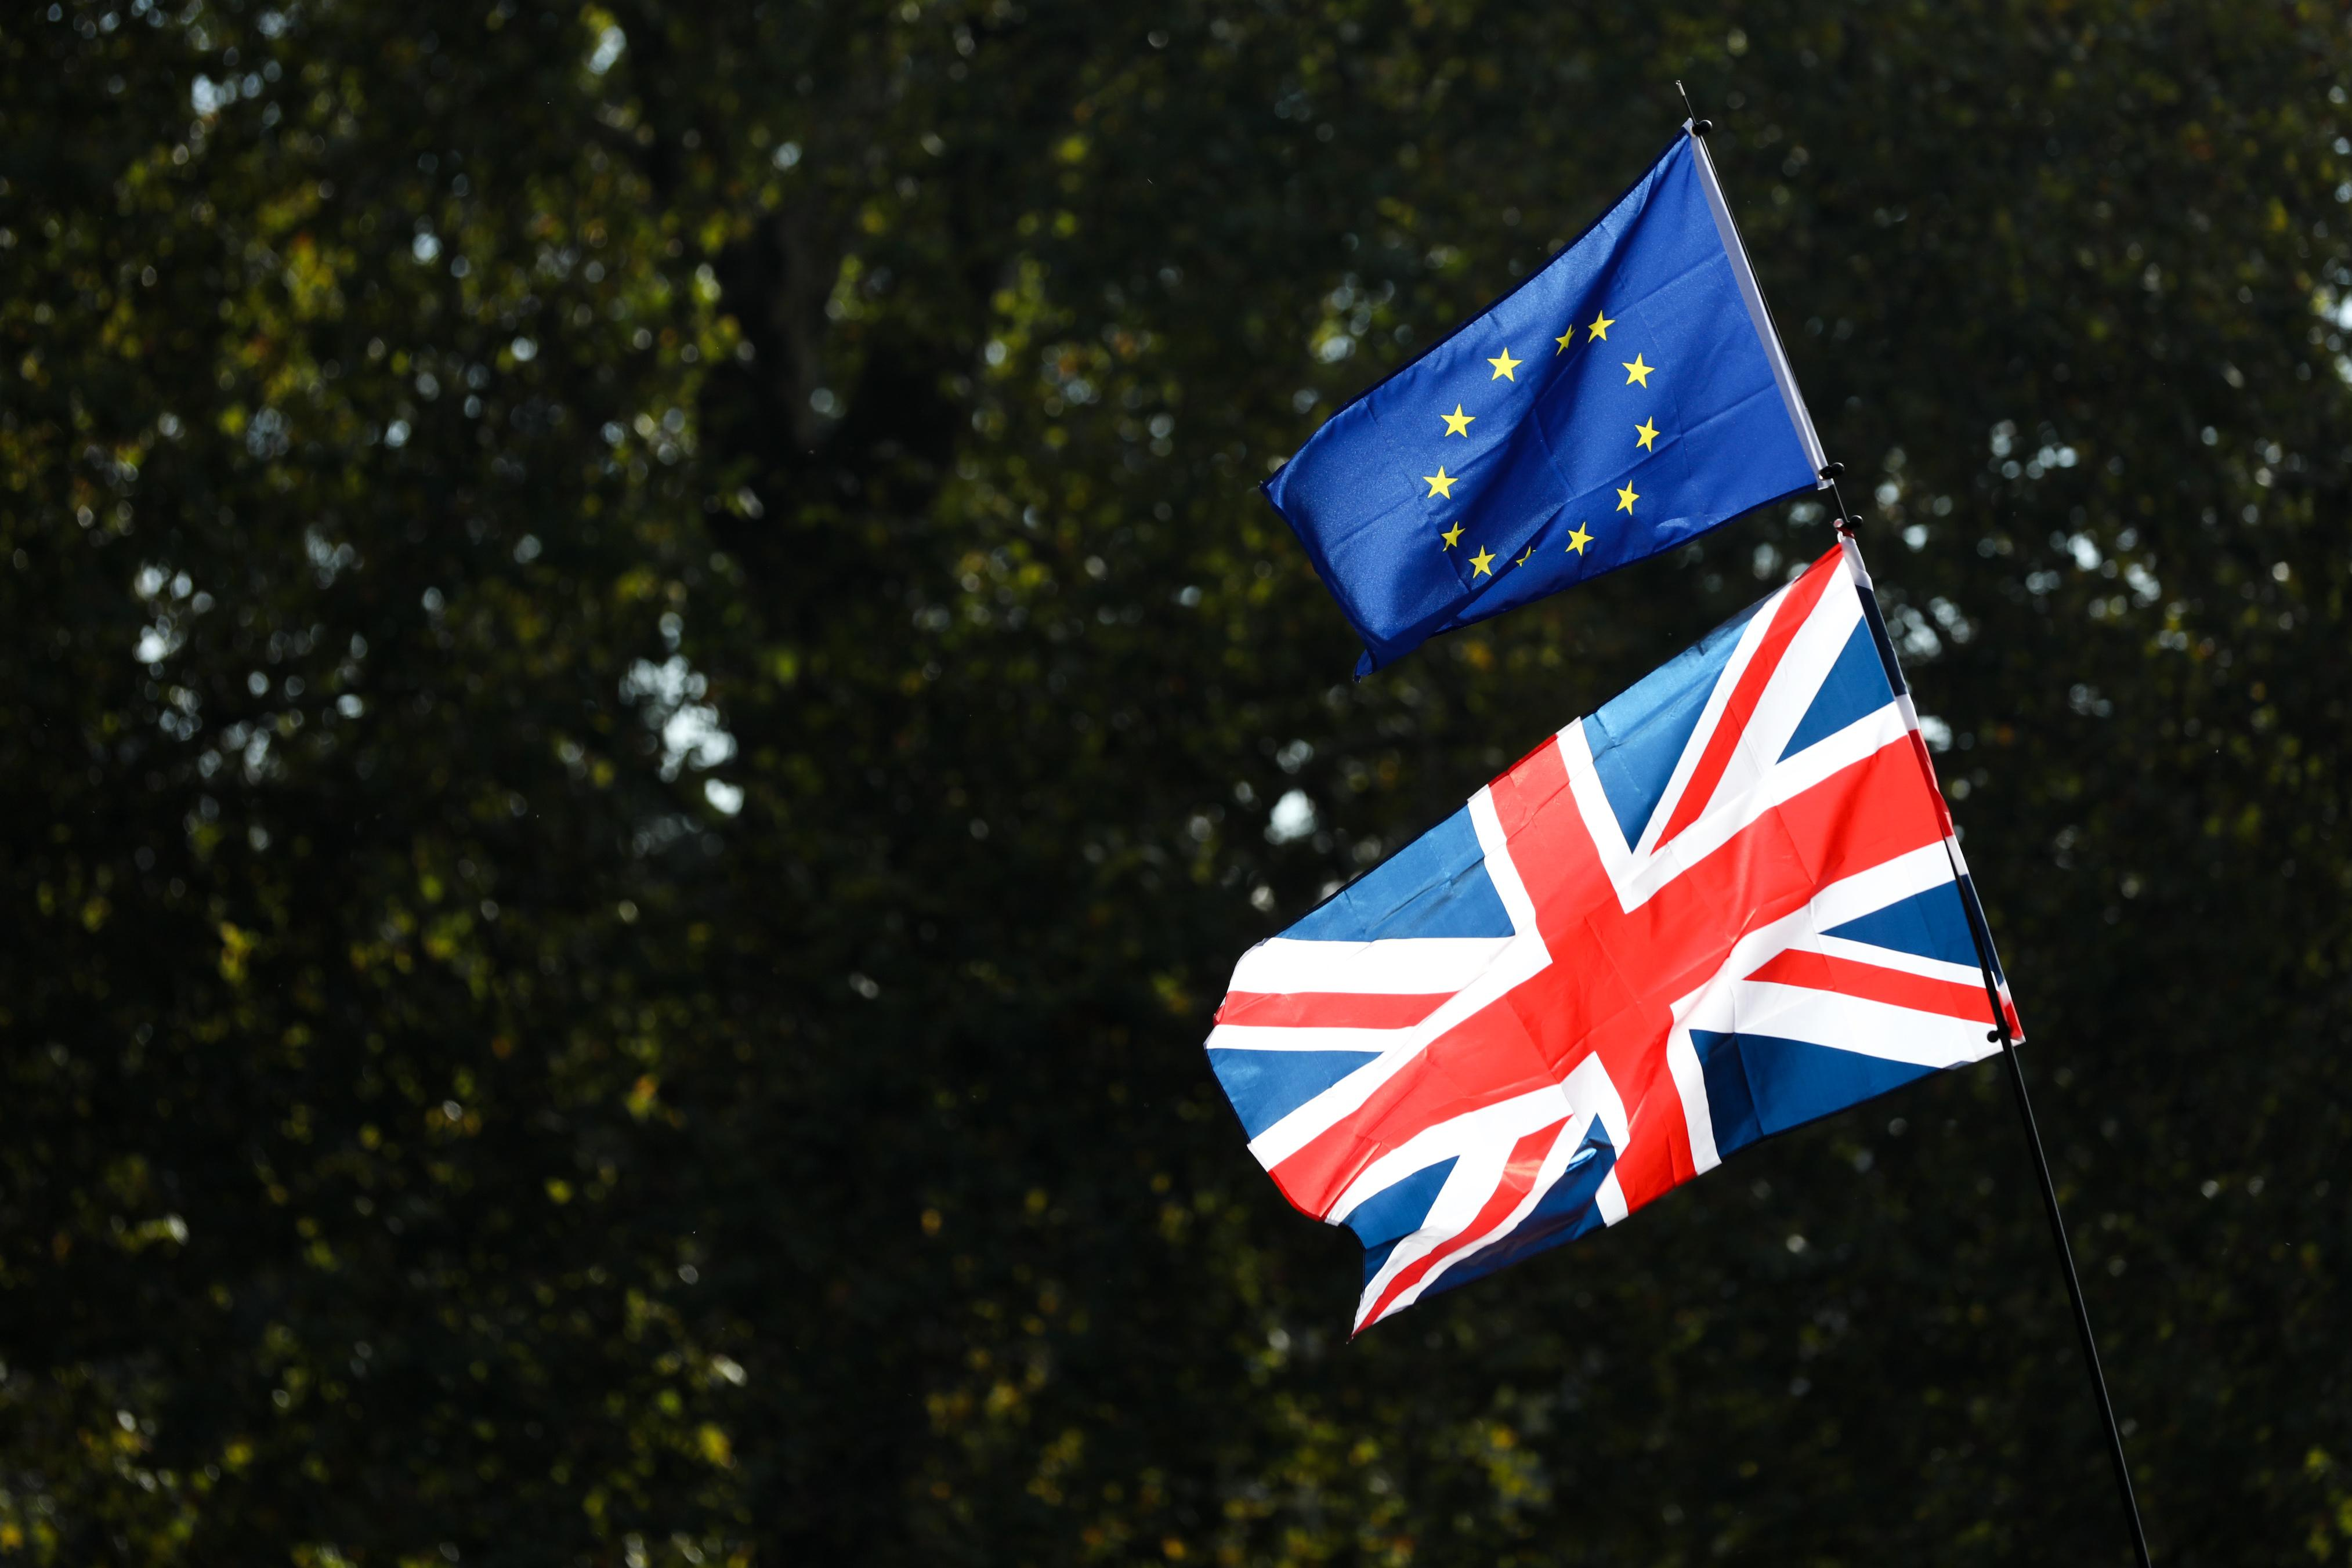 Brexit EU and Union Jack Flags